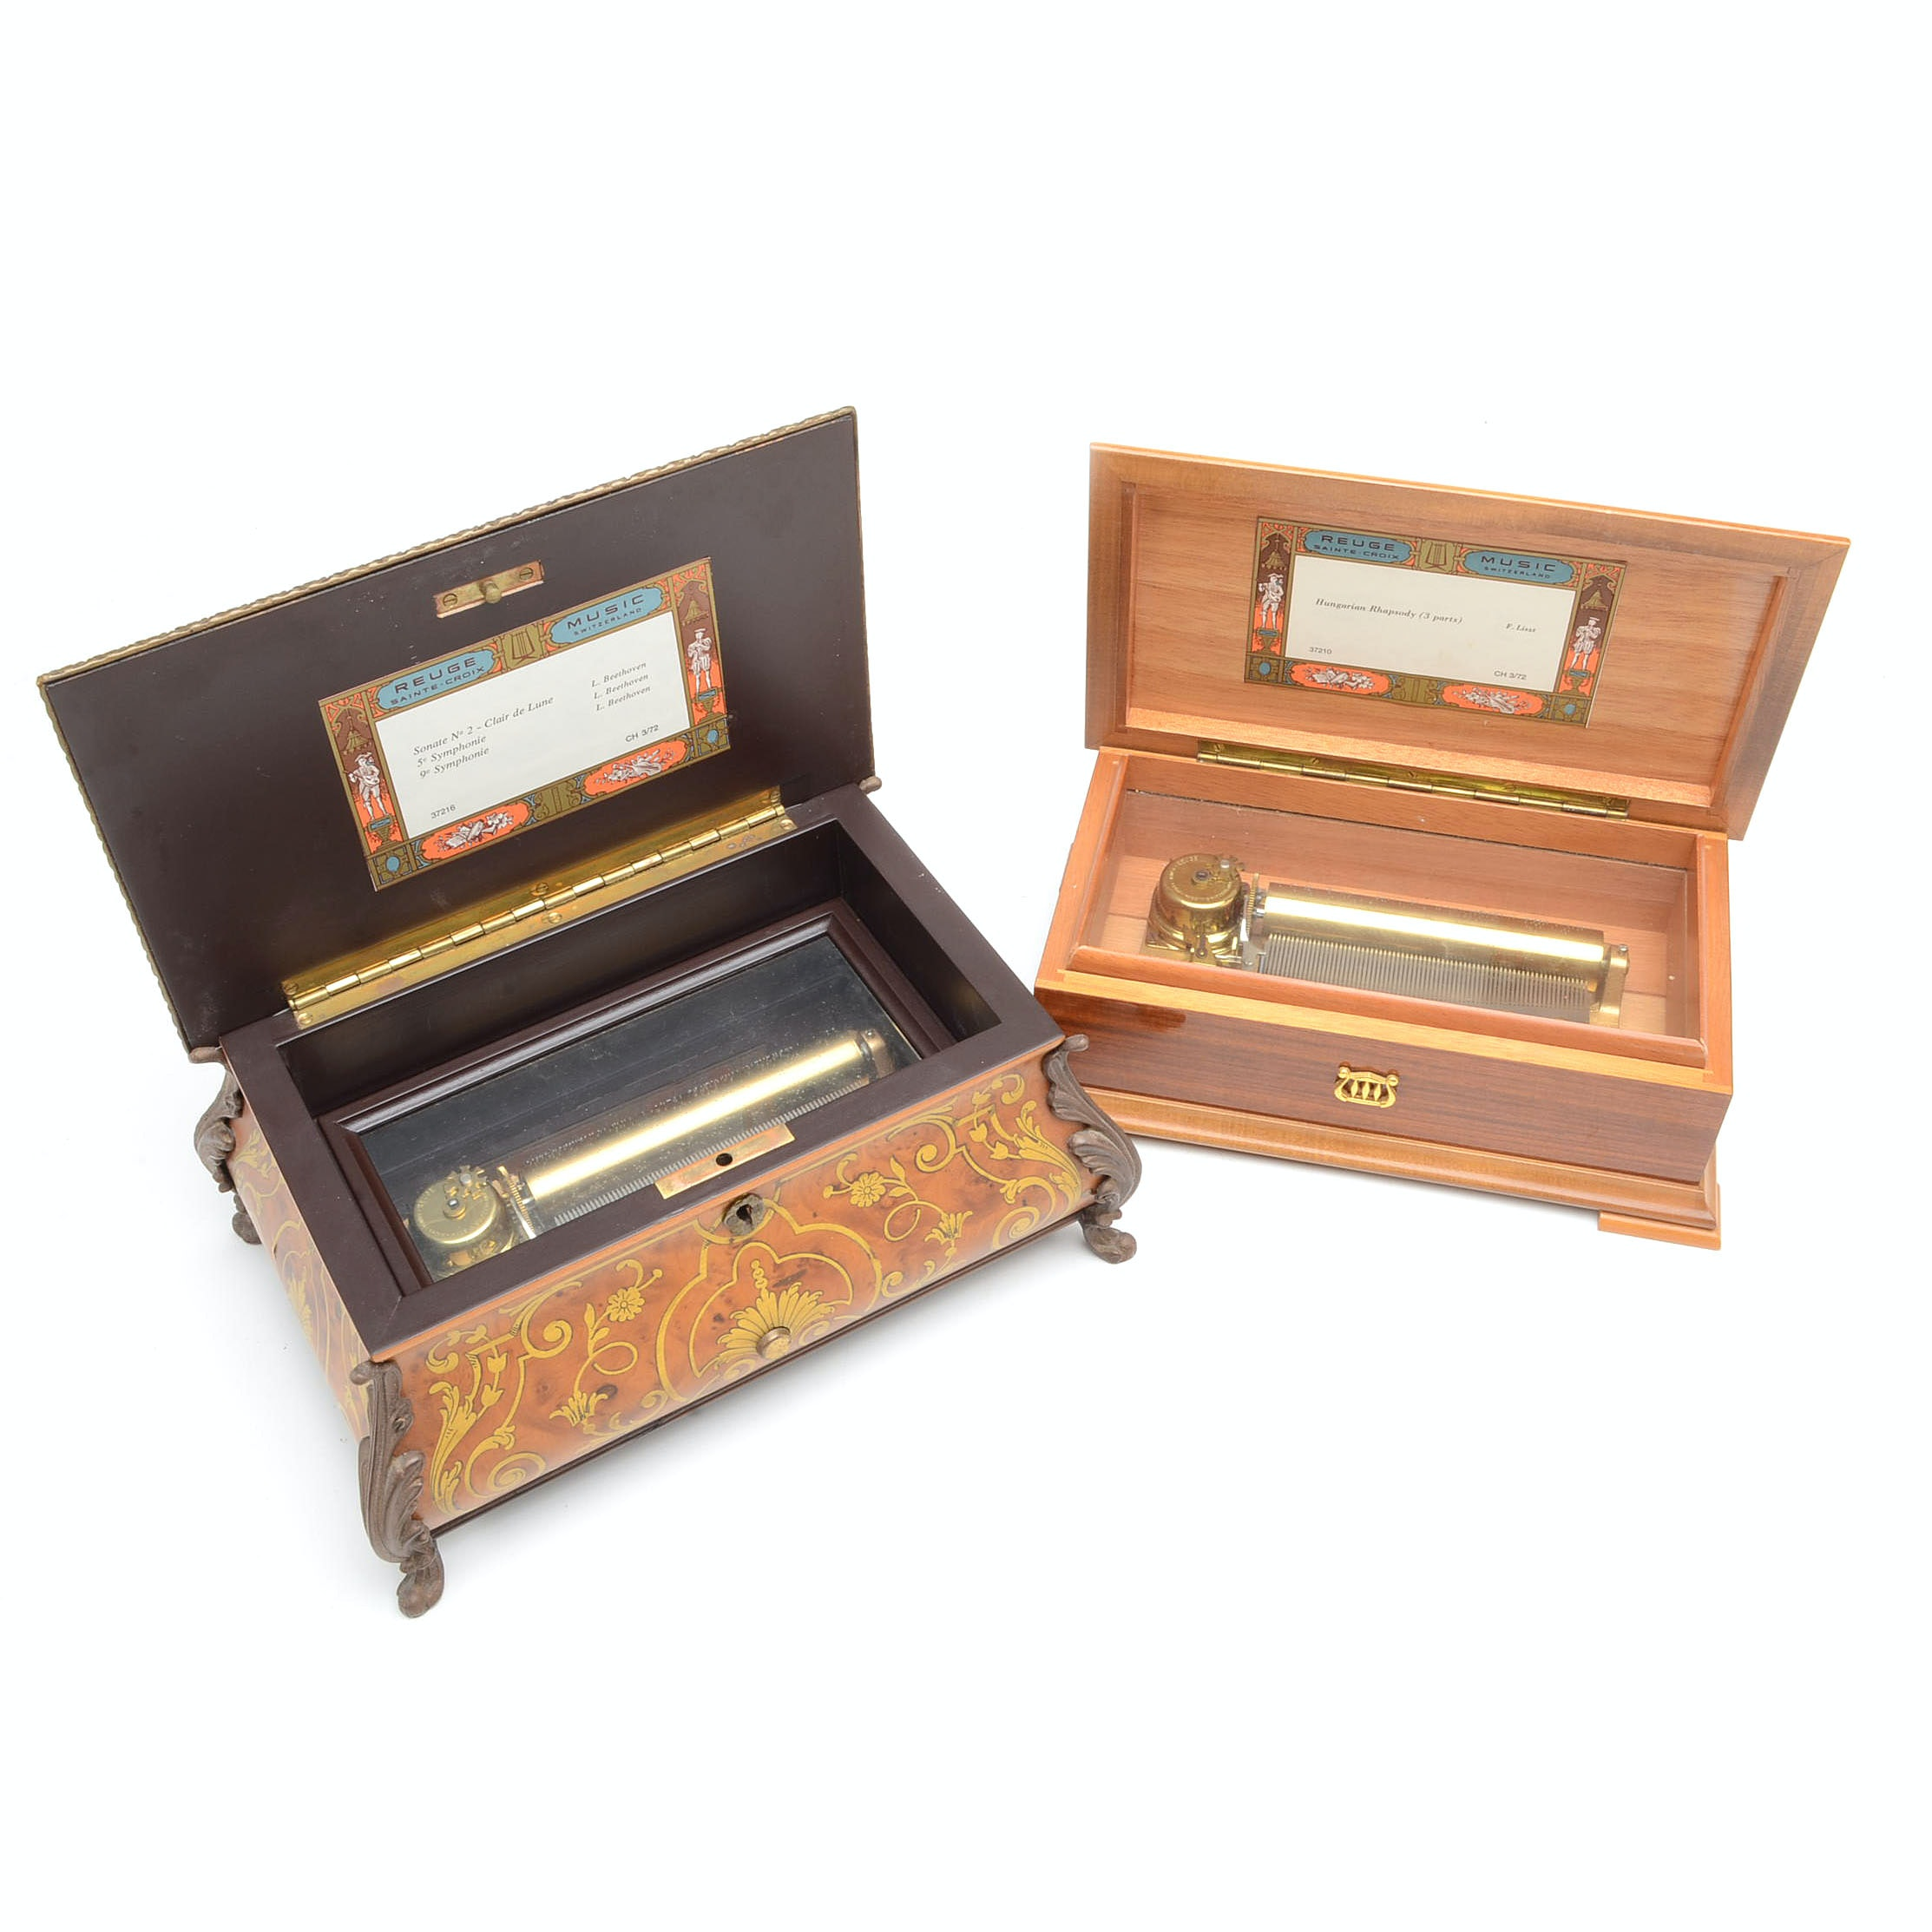 Vintage Reuge Swiss Music Boxes